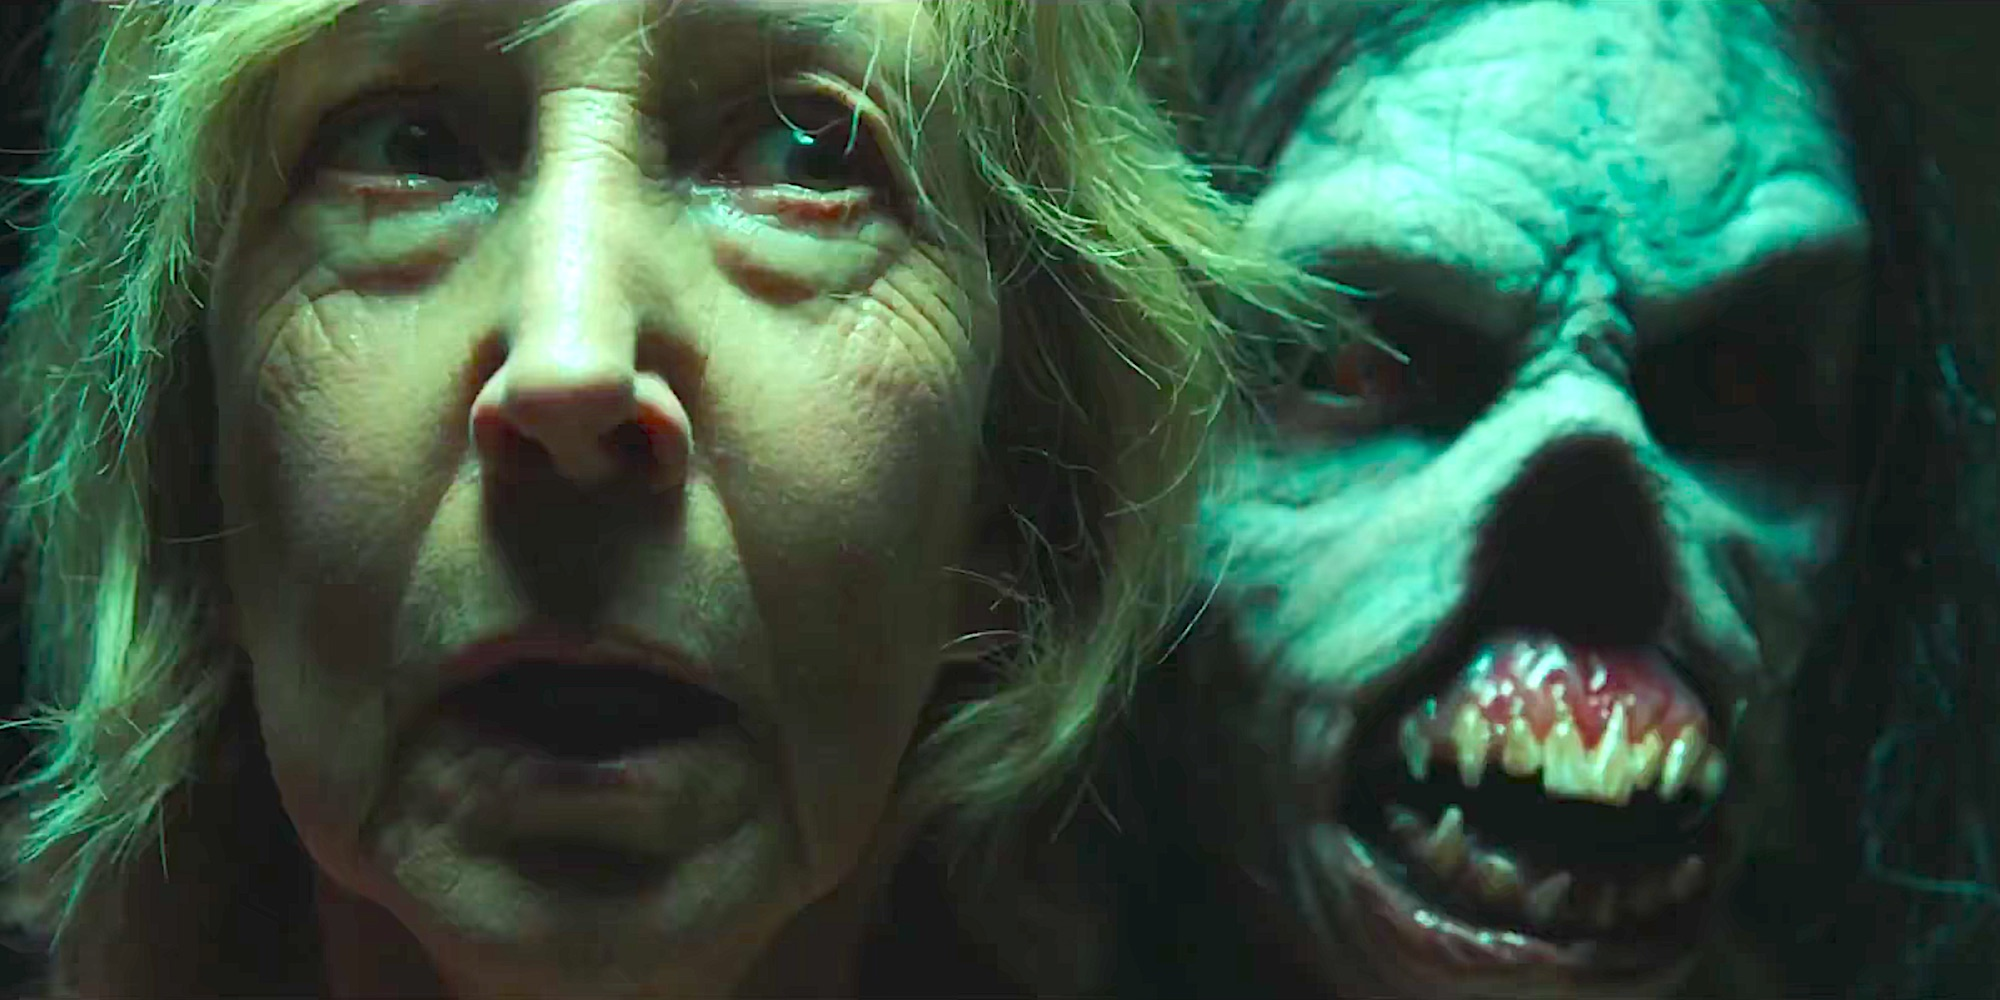 Insidious: The Last Key - The Most Brutal Reviews